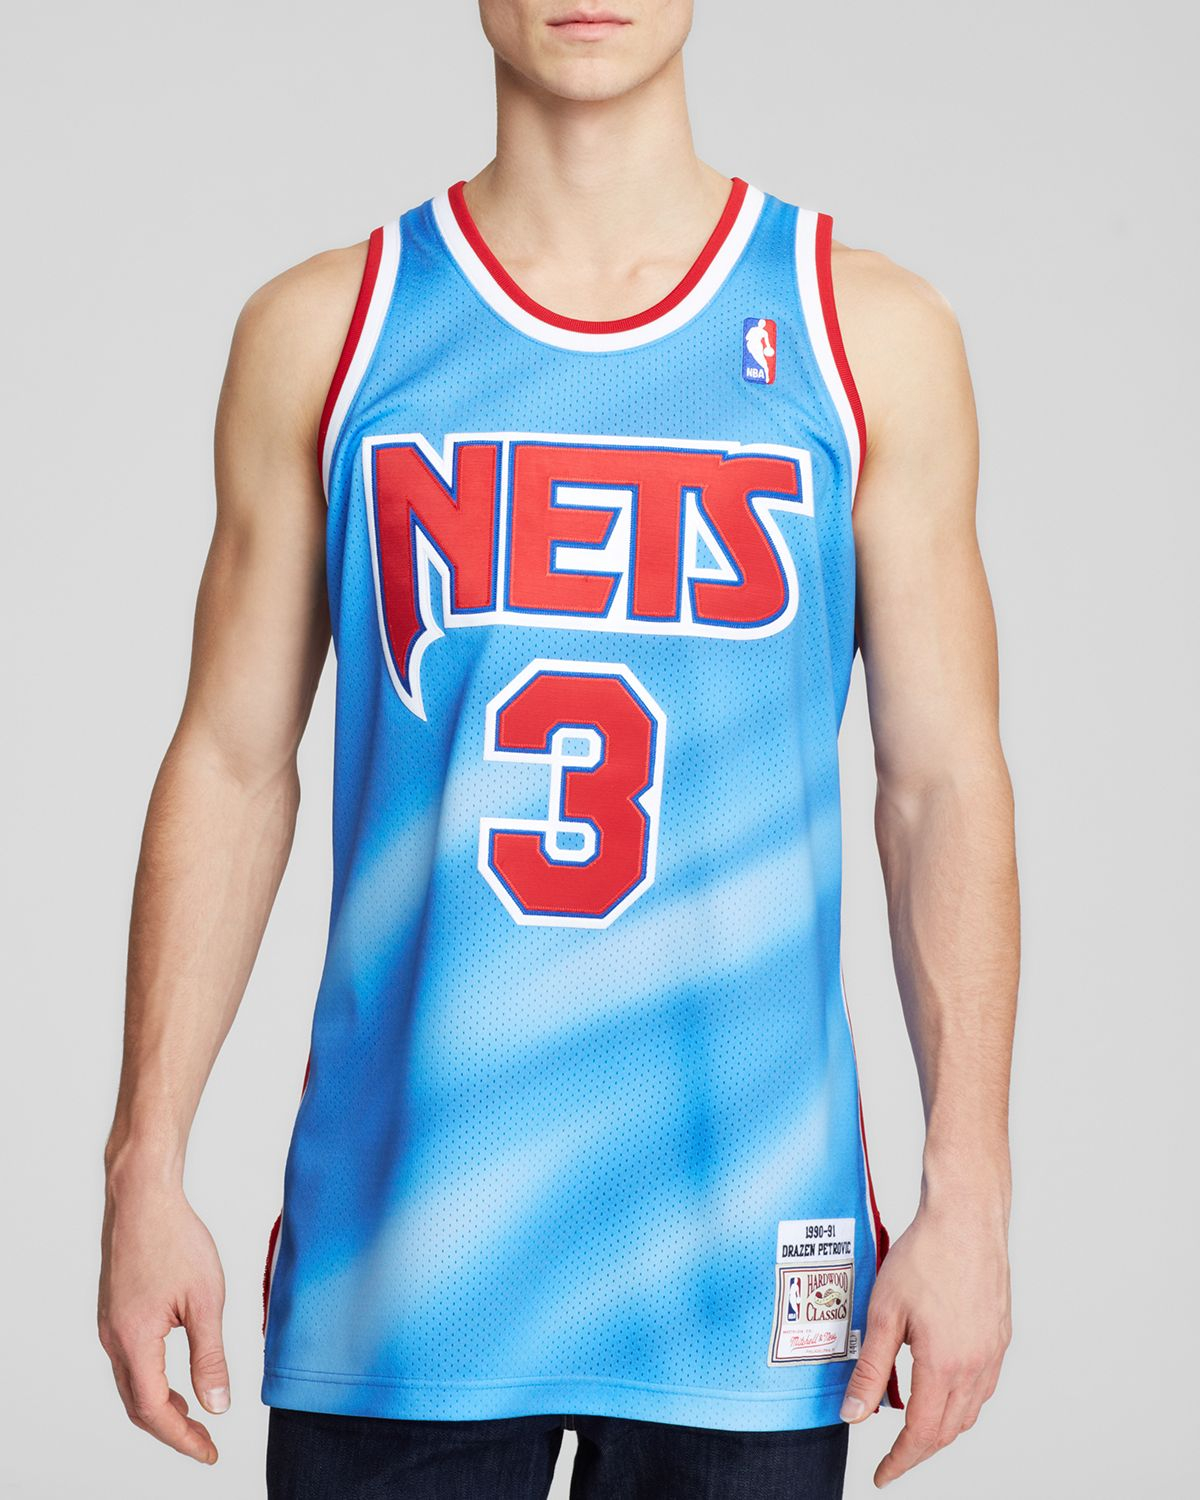 release date ad4db 0d2c1 Mitchell & Ness Blue 1993 New Jersey Nets Drazen Petrovic Jersey for men